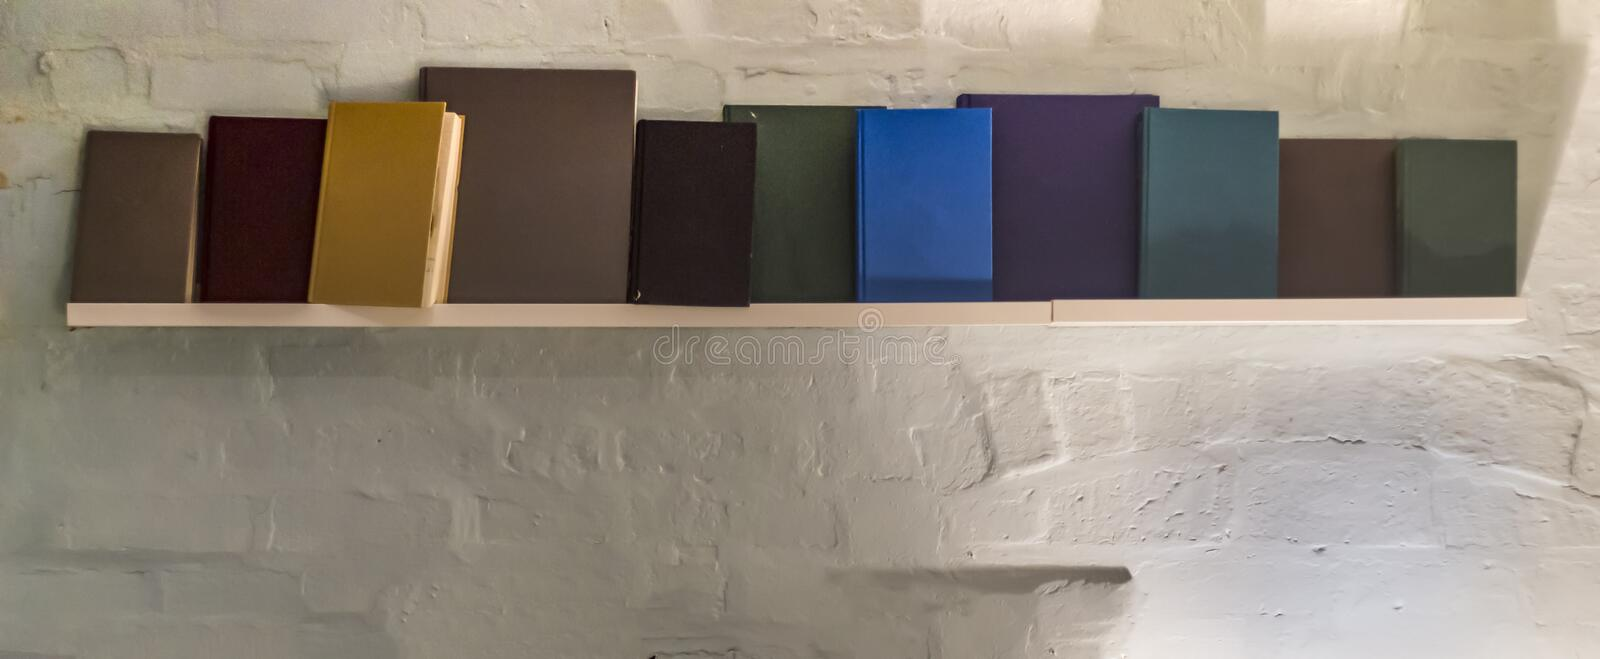 Blank books on a shelf royalty free stock photography